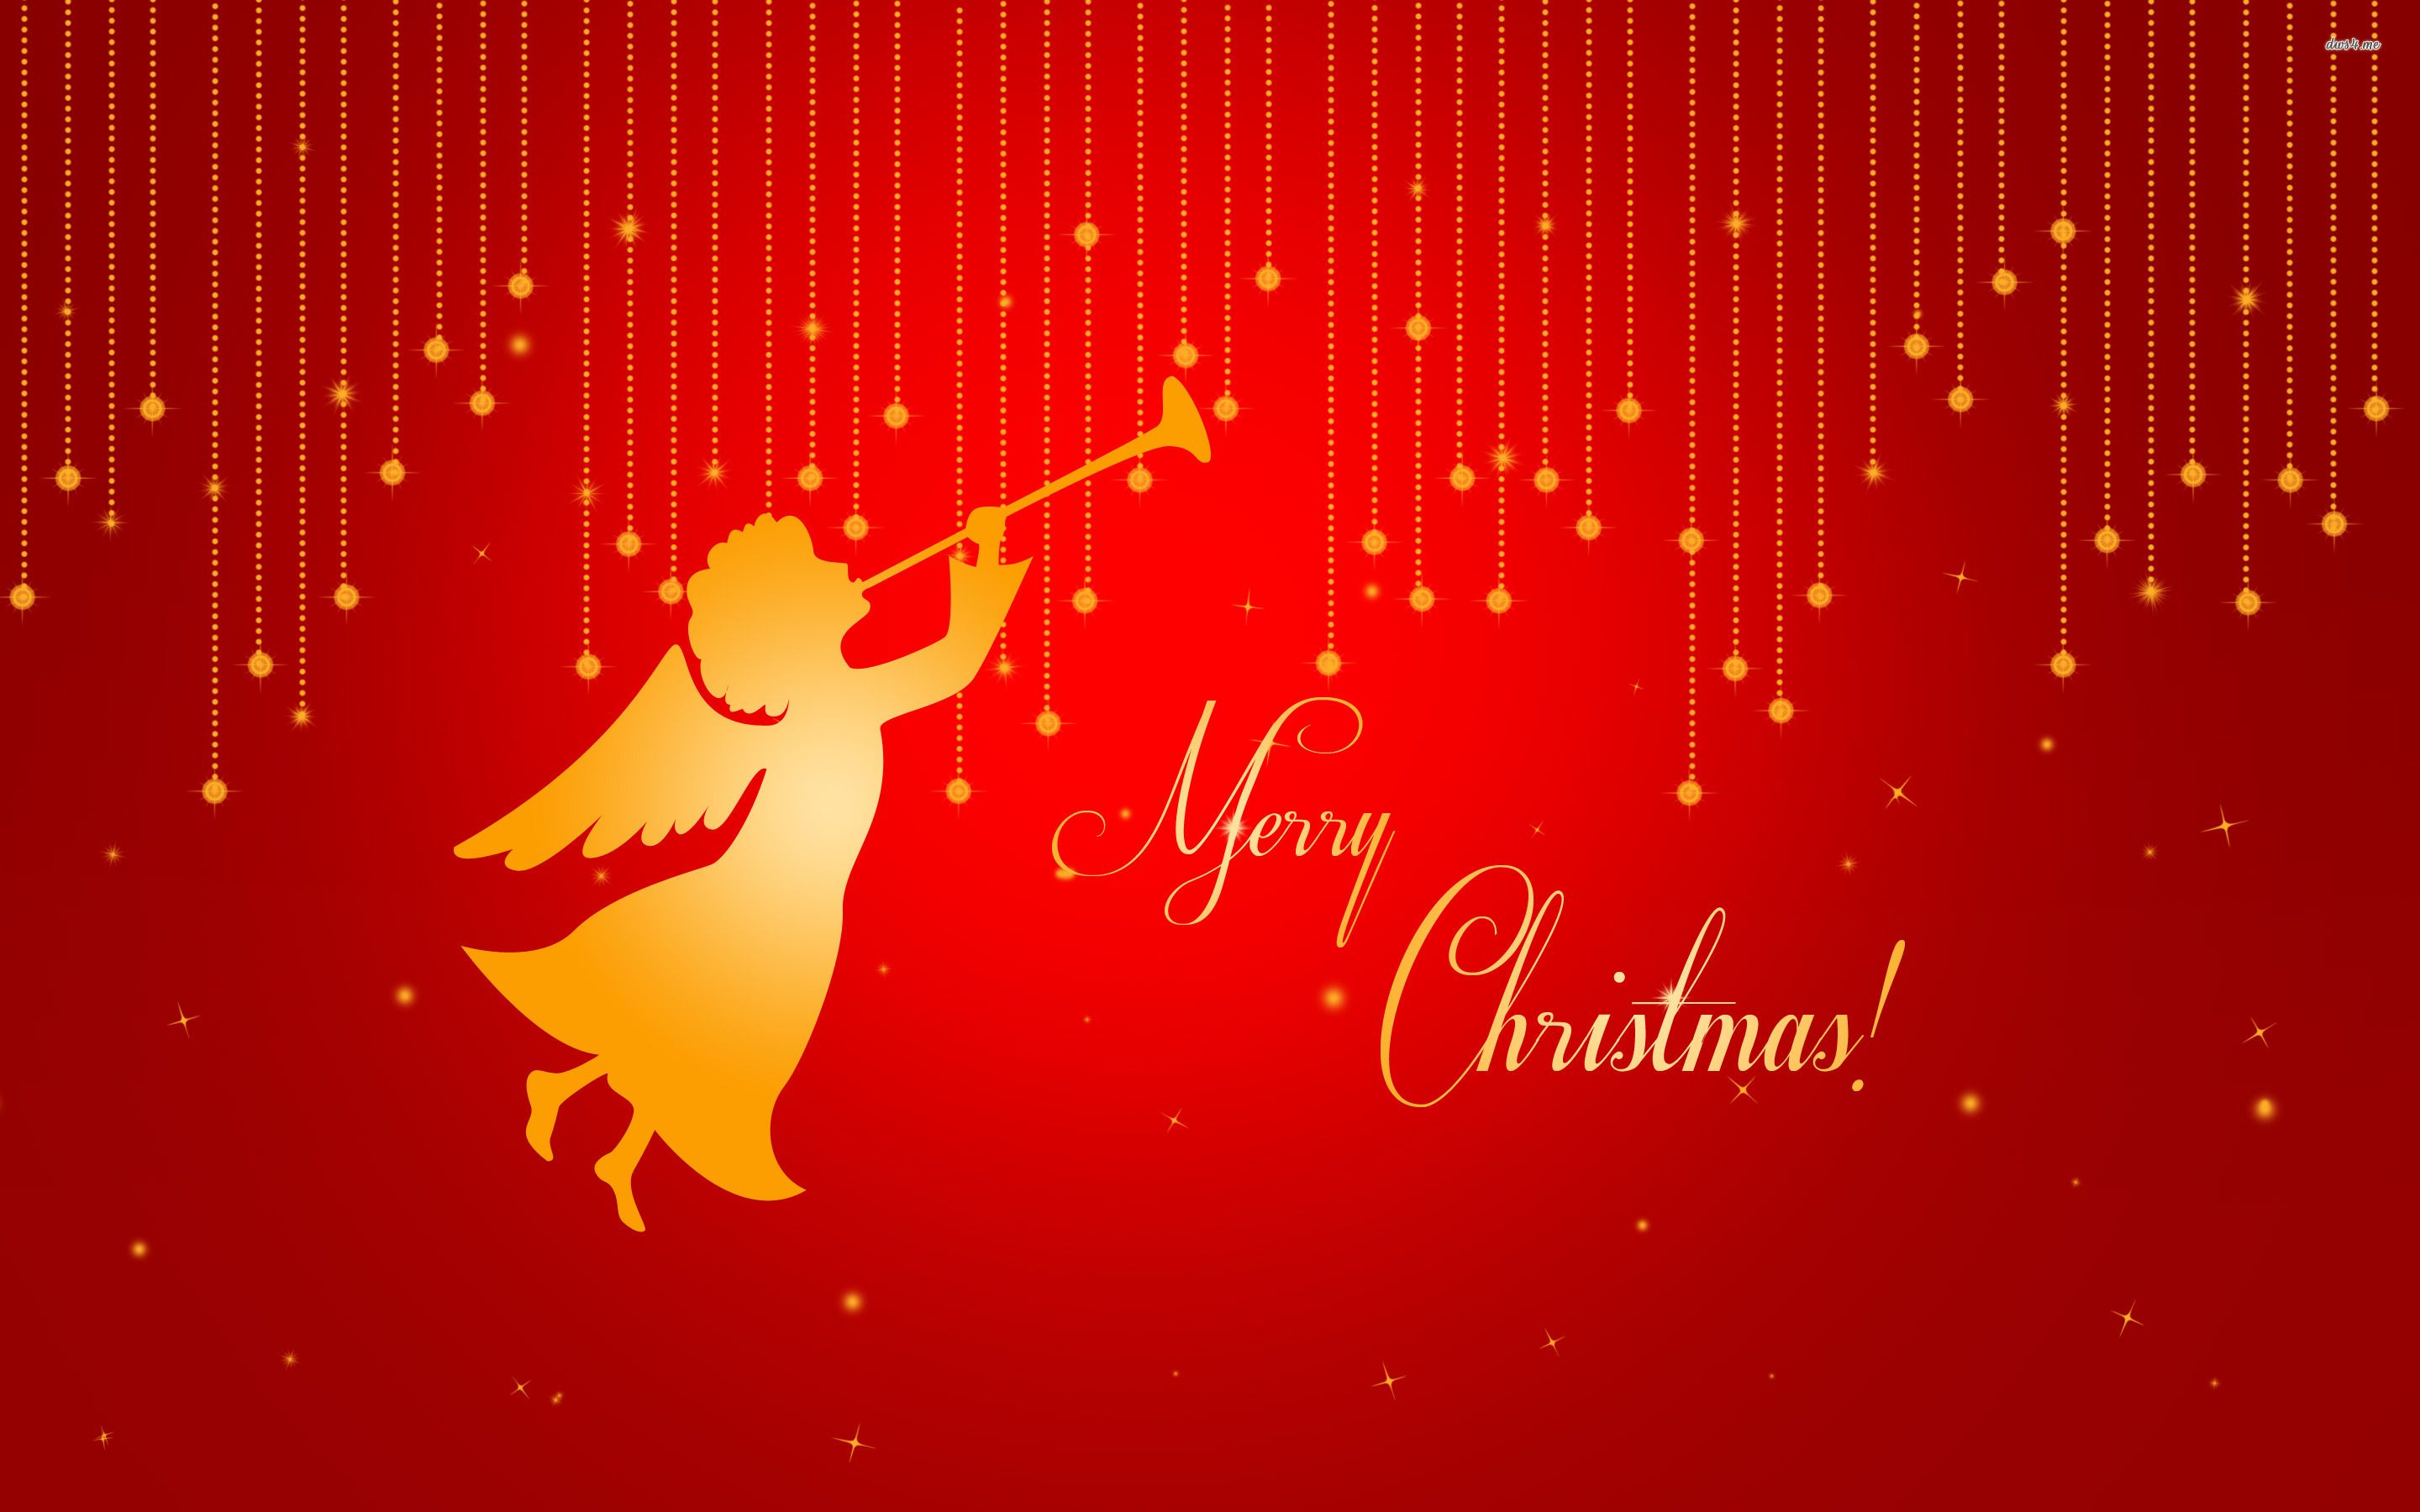 Angels Christmas Background.Christmas Angels Wallpapers Top Free Christmas Angels